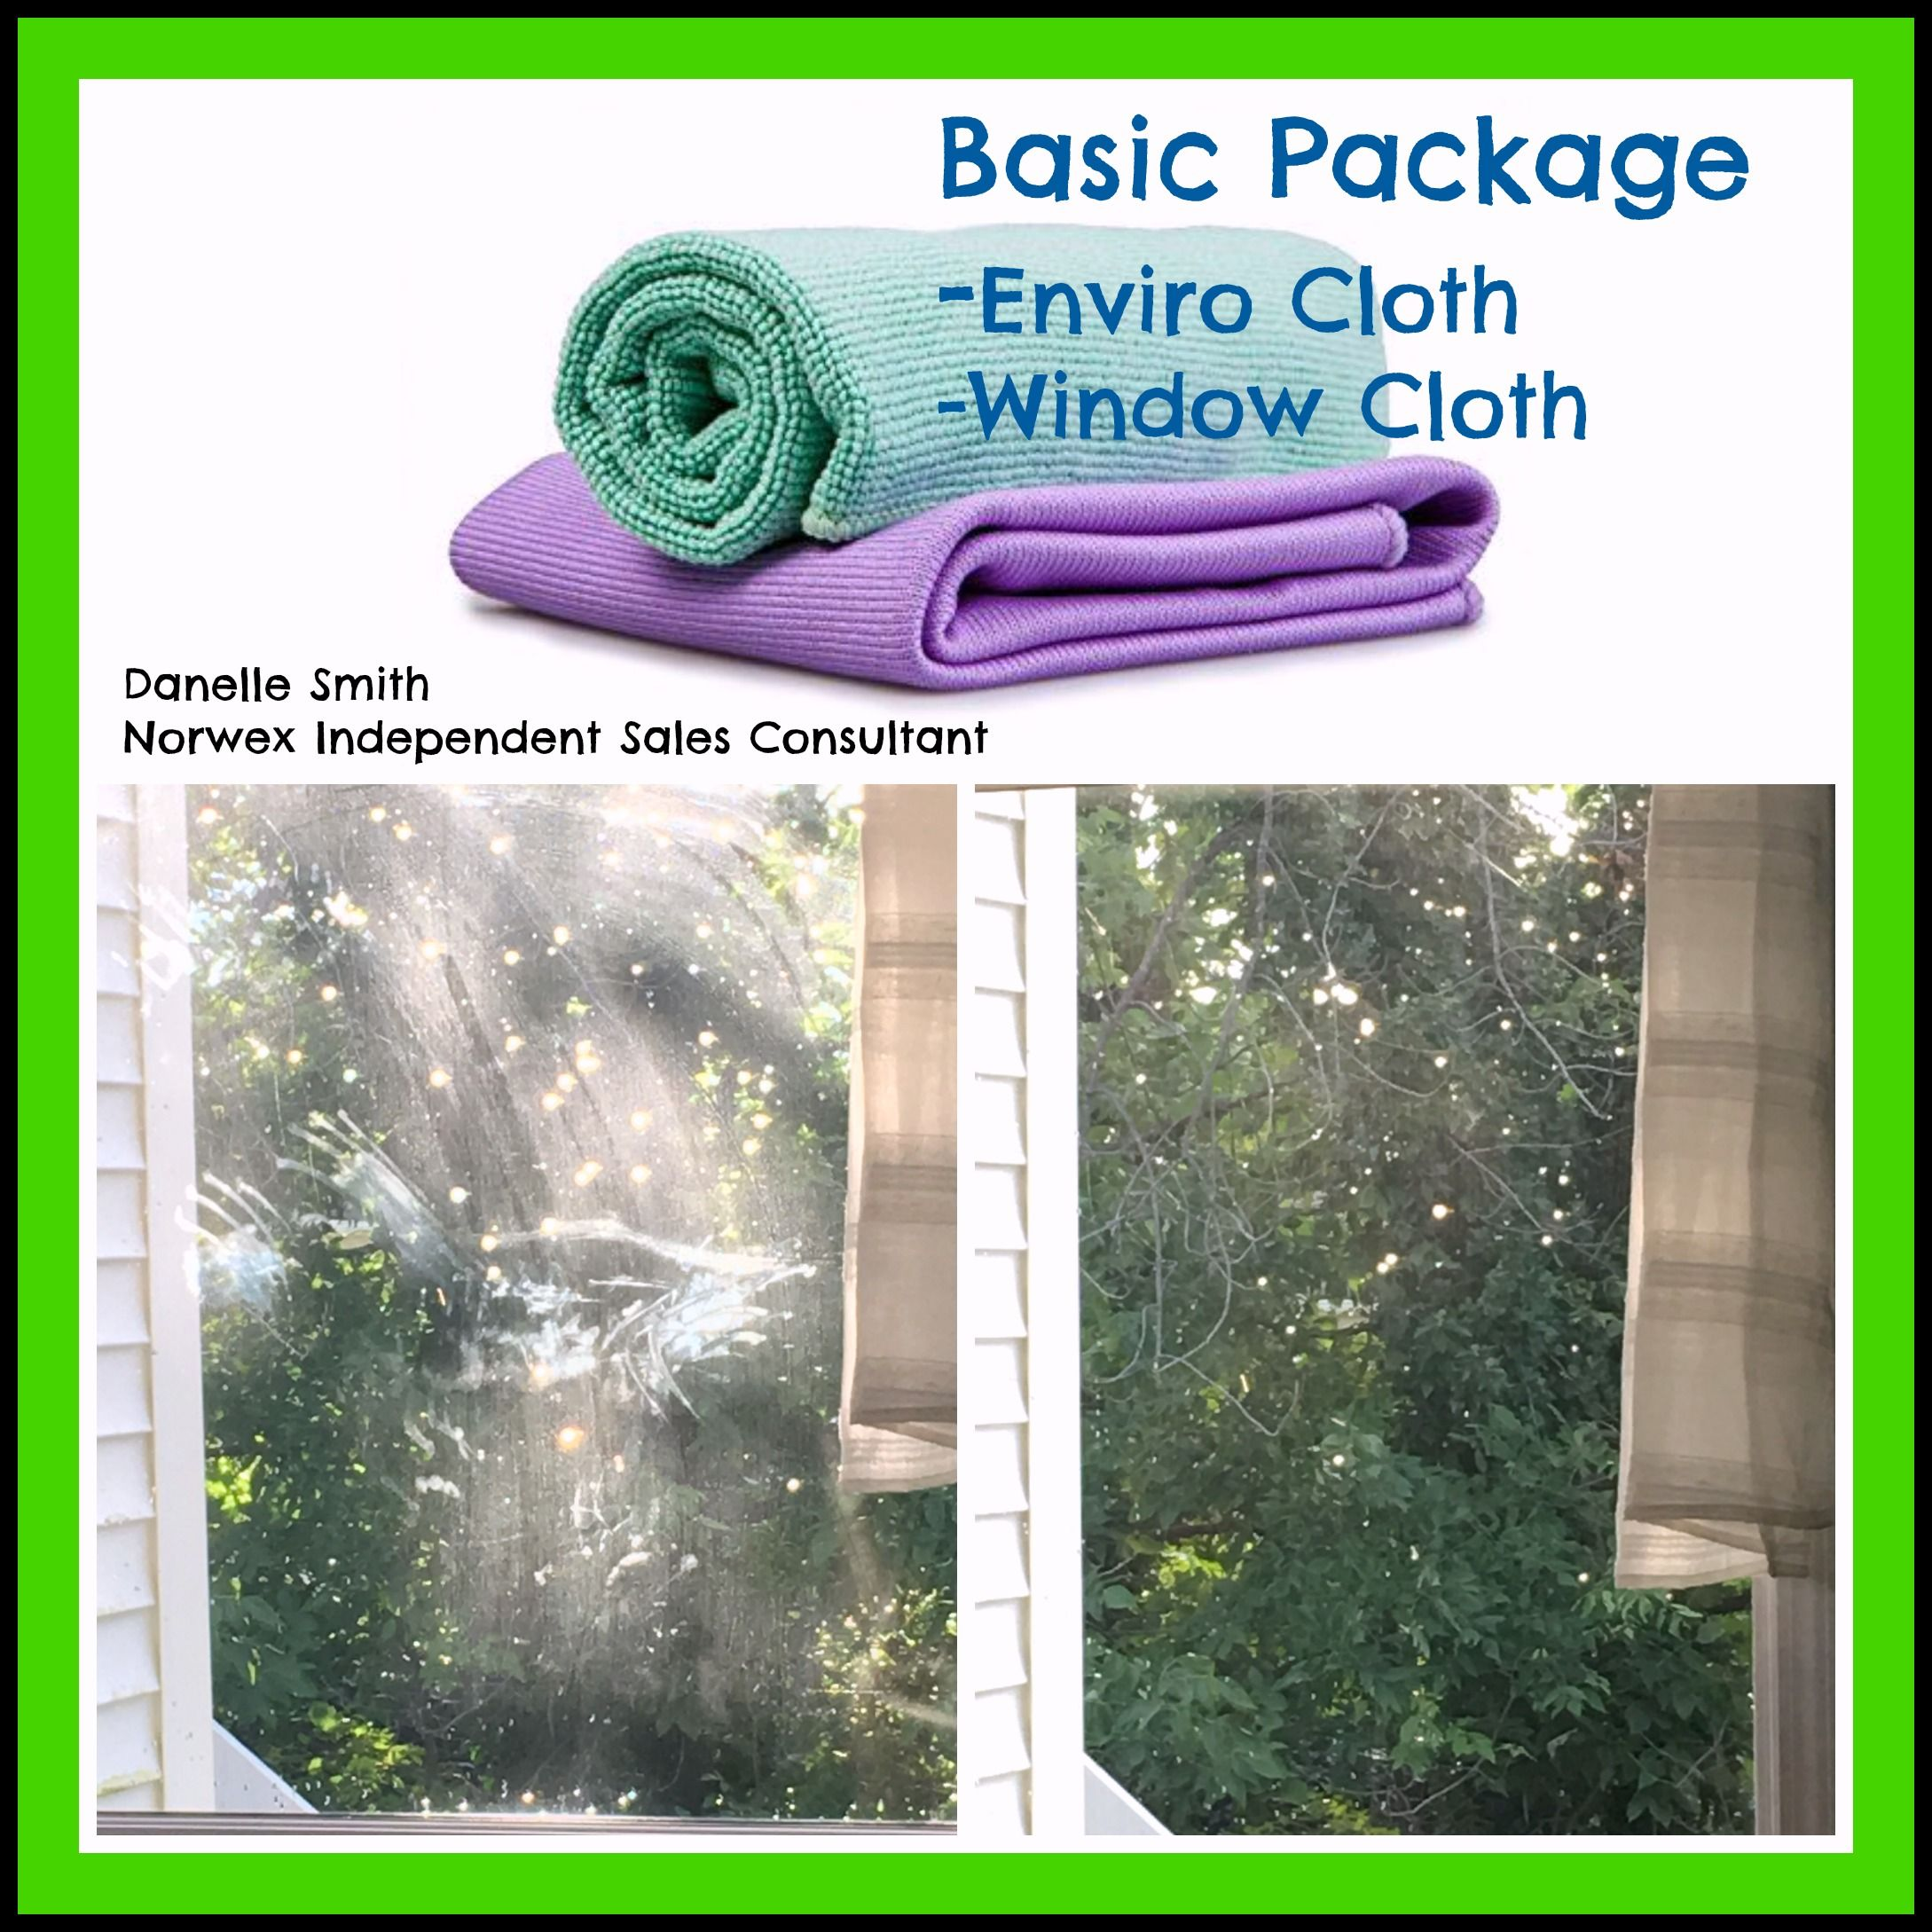 Tips For Cleaning Windows: Chemical Free Cleaning Products